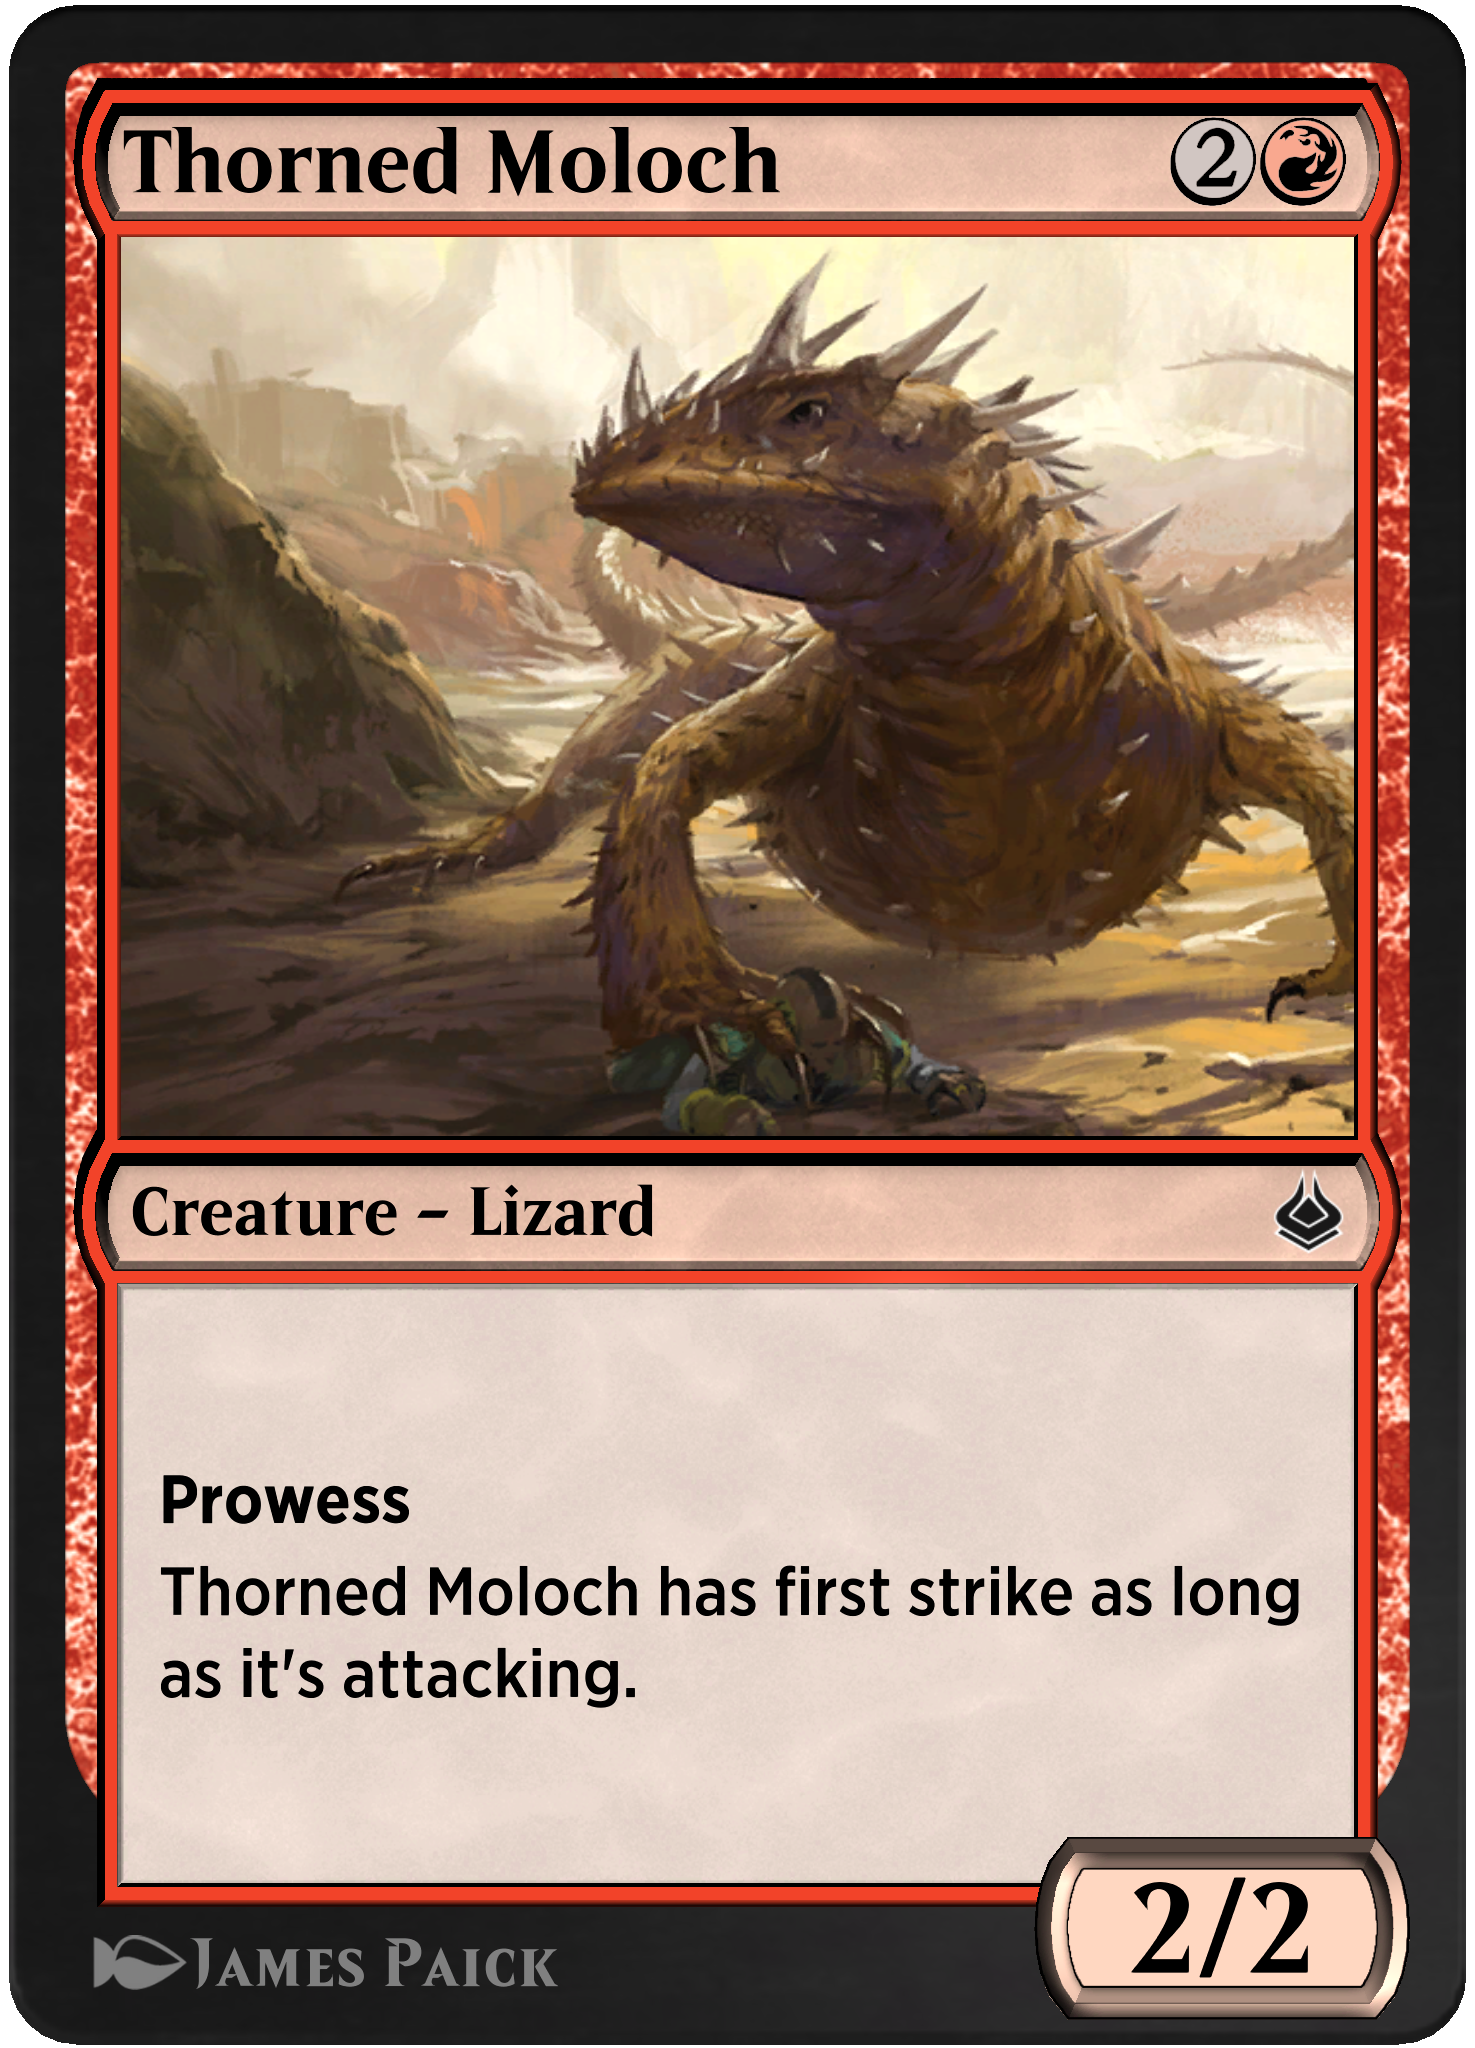 Thorned Moloch